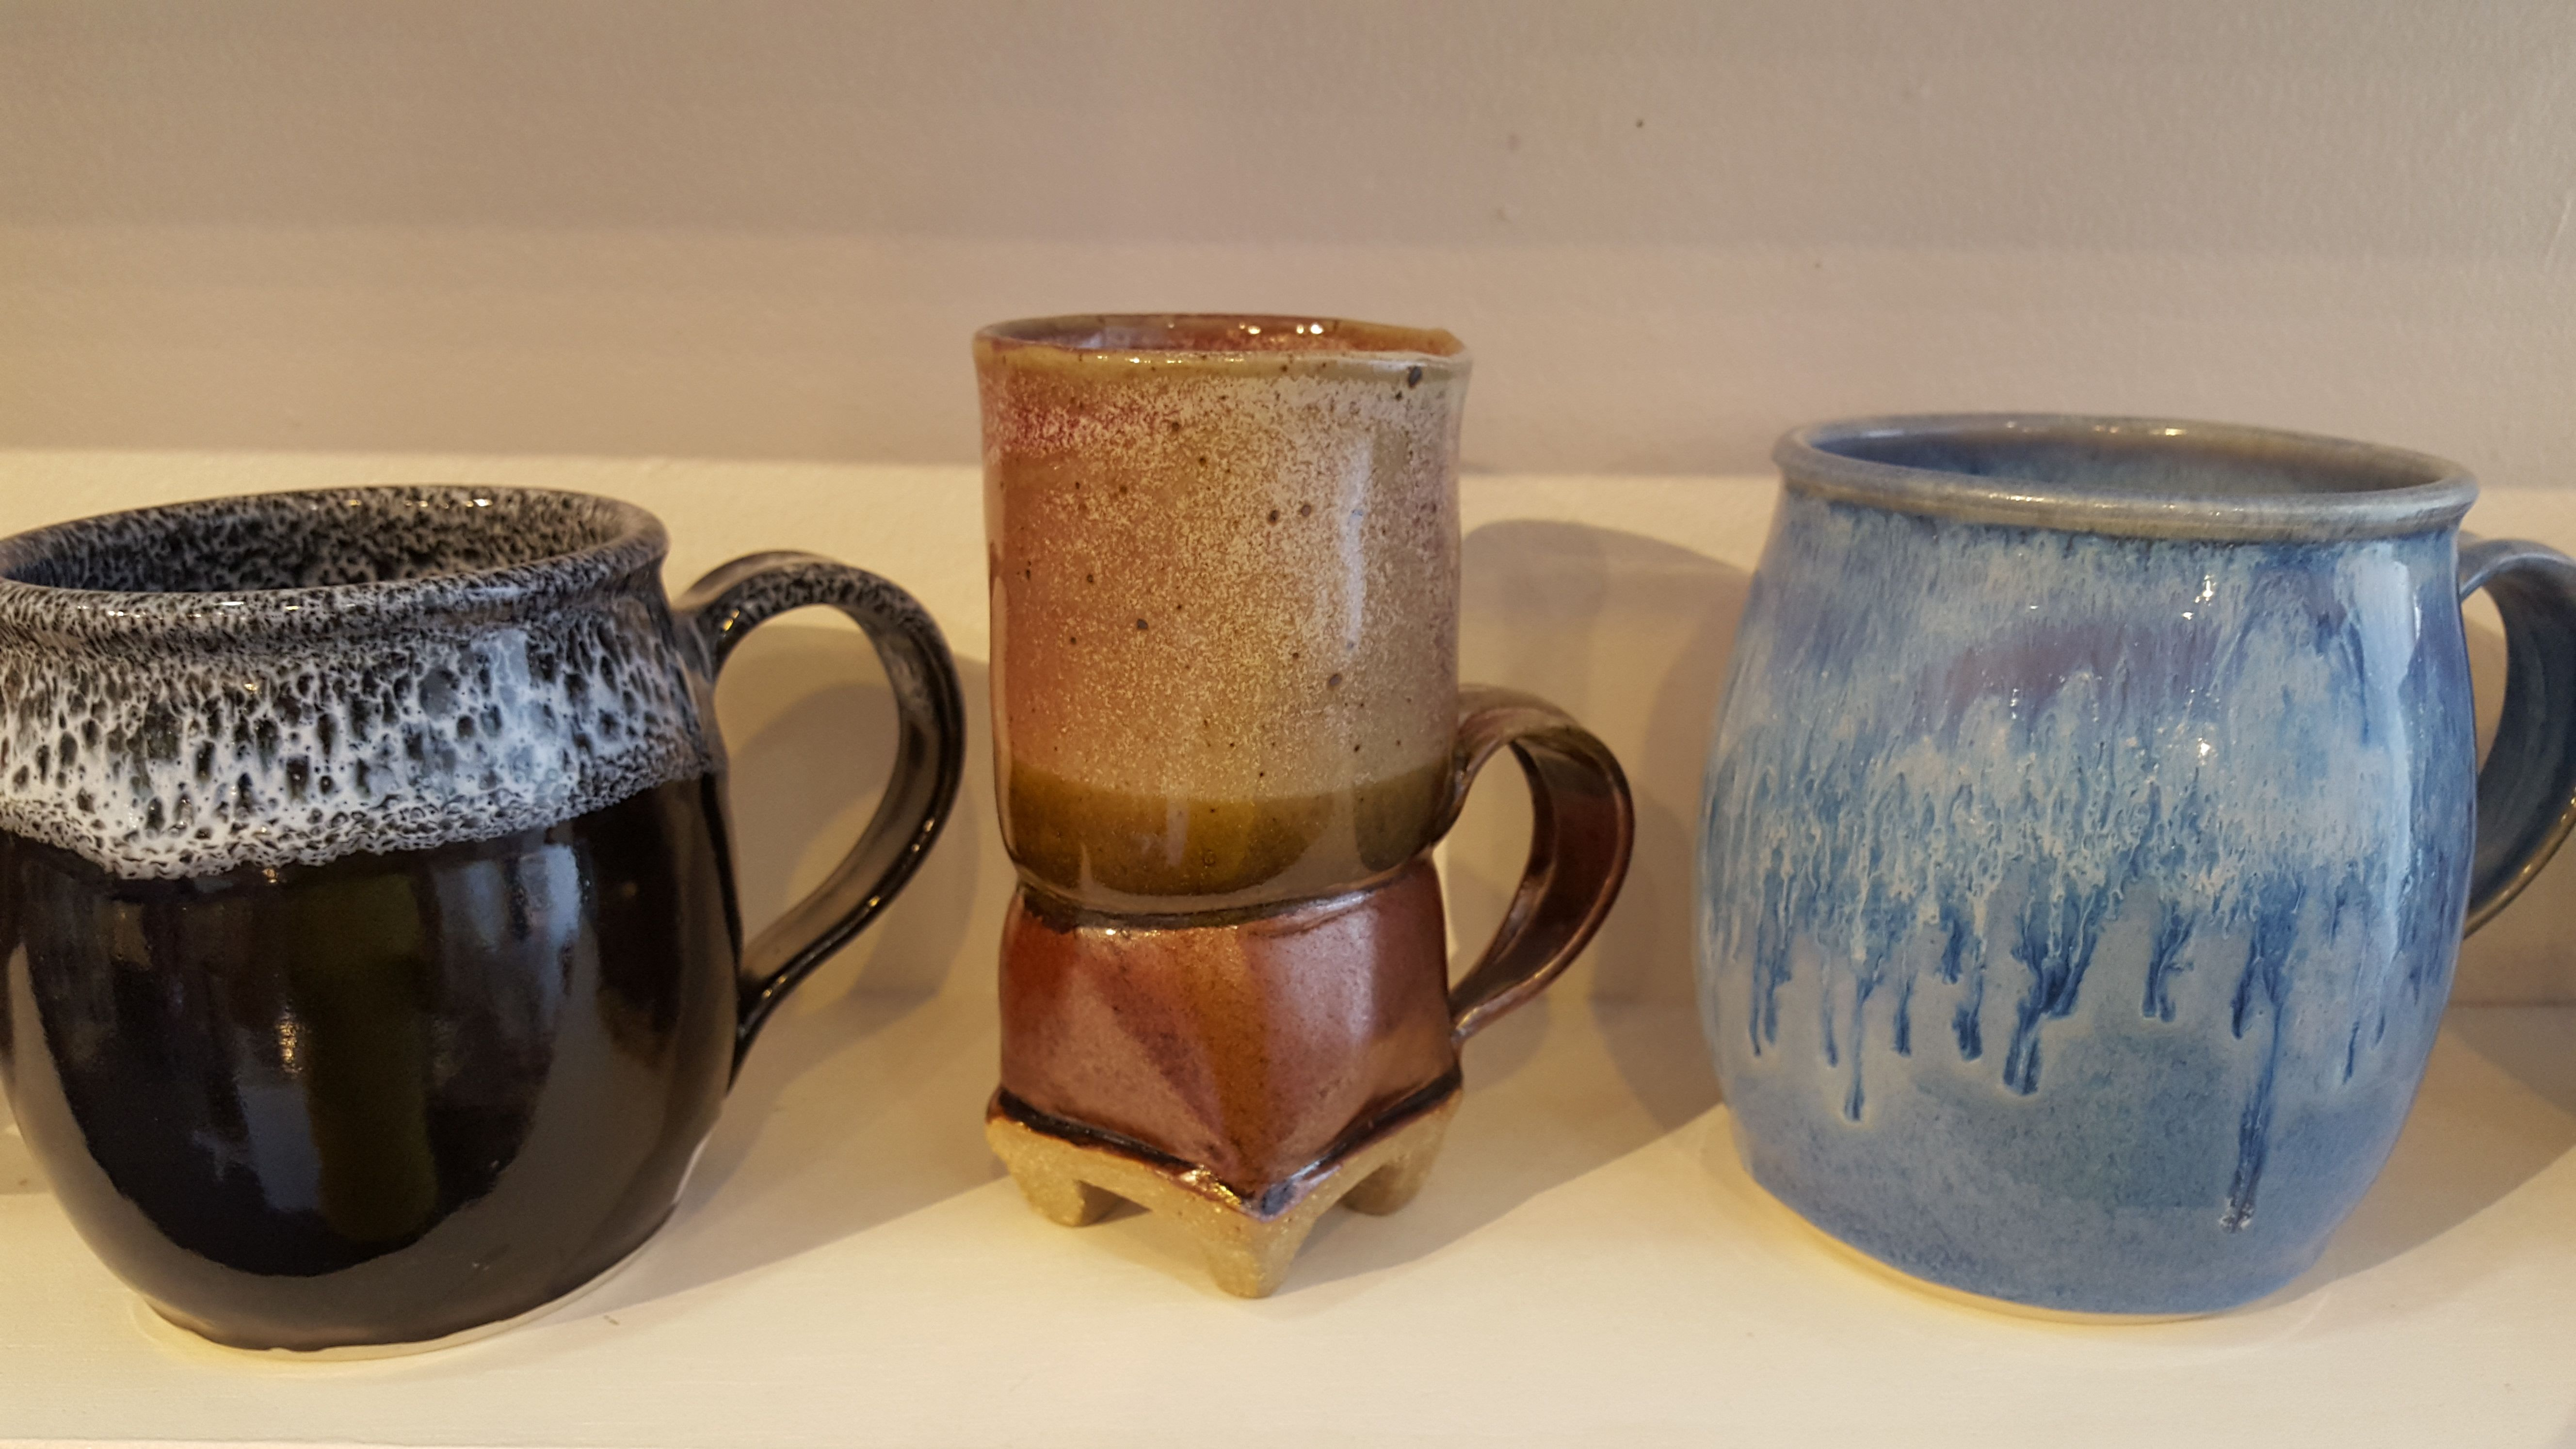 Mugs For Fathersday By Arline Edmonds And David Frank Middle Pottery Handcrafted Mugs Ceramic Mugs Pottery